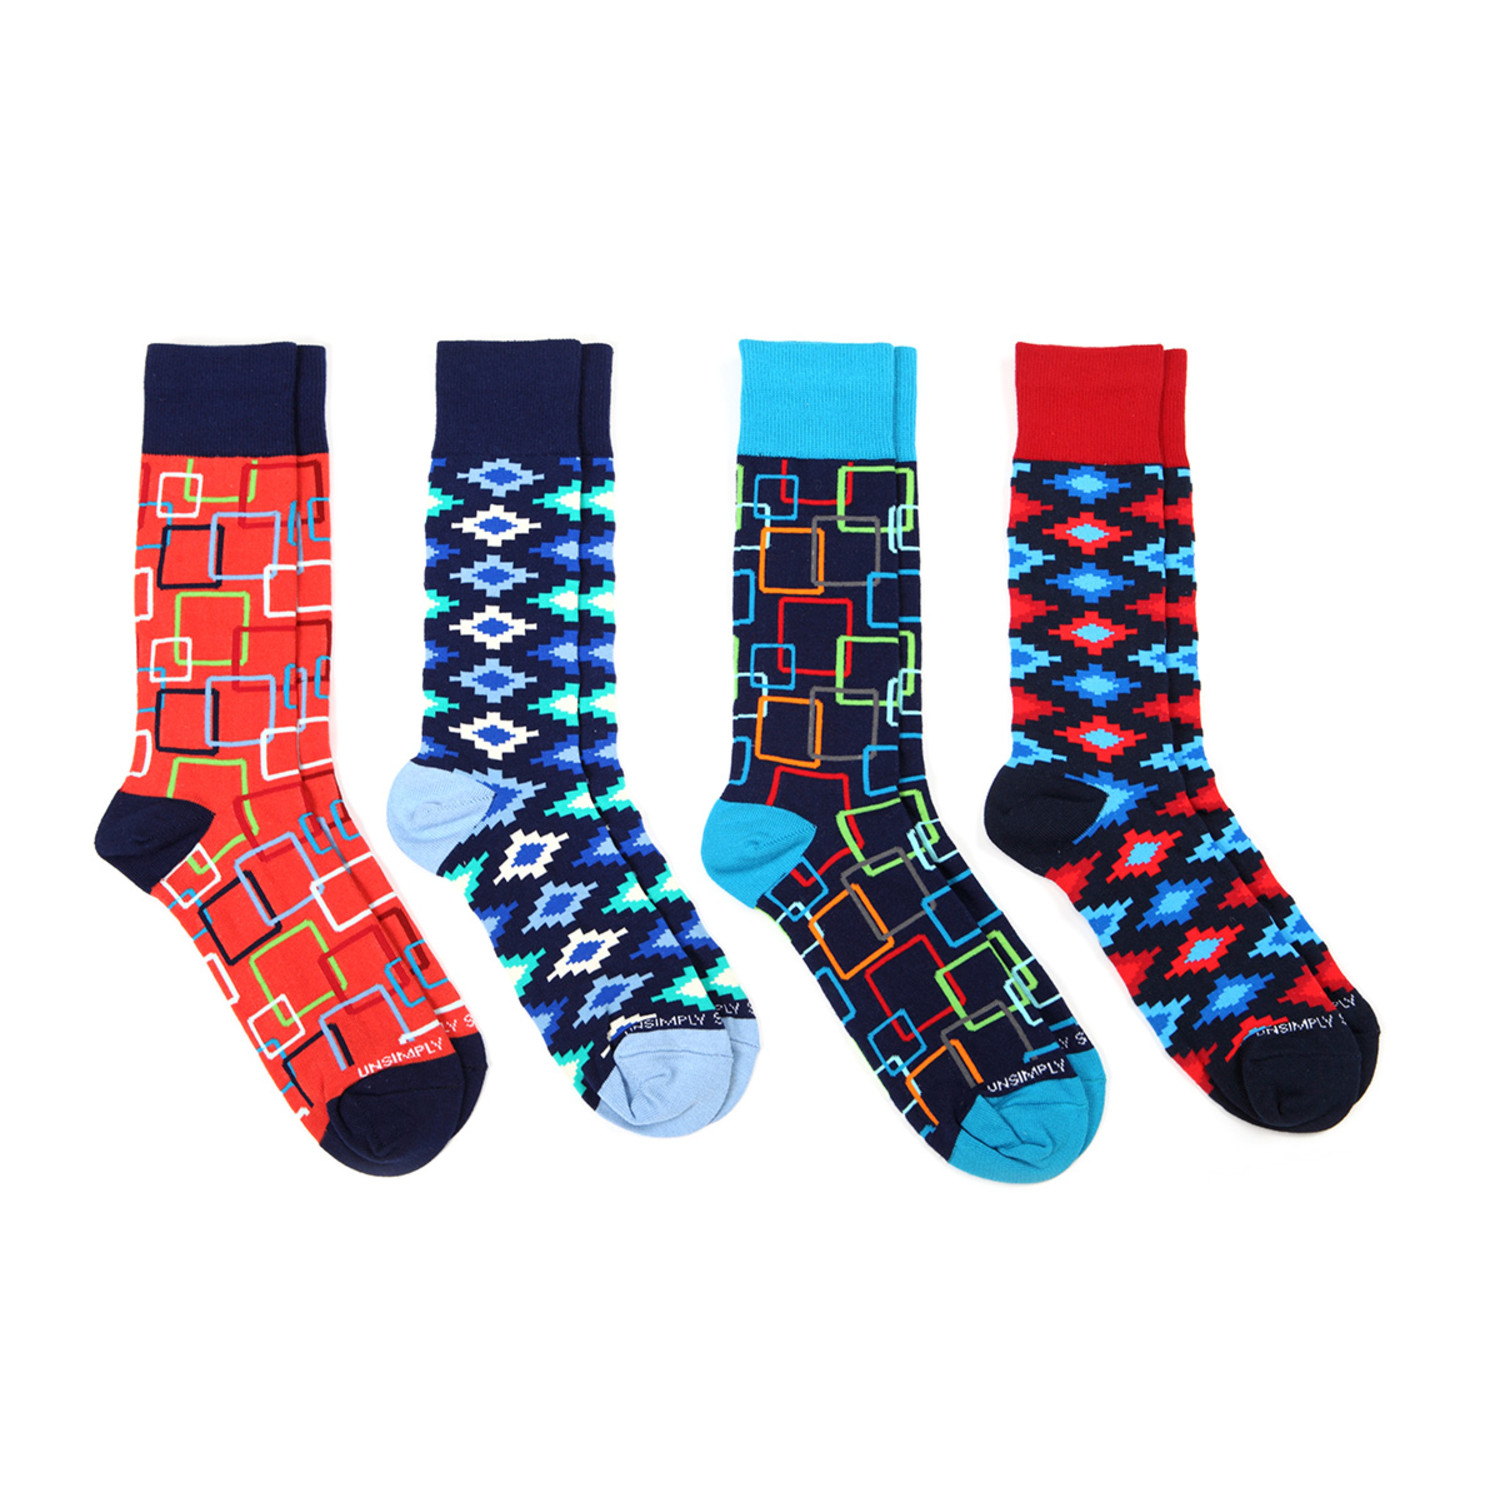 Dress socks vibrant shapes pack of 4 unsimply stitched touch